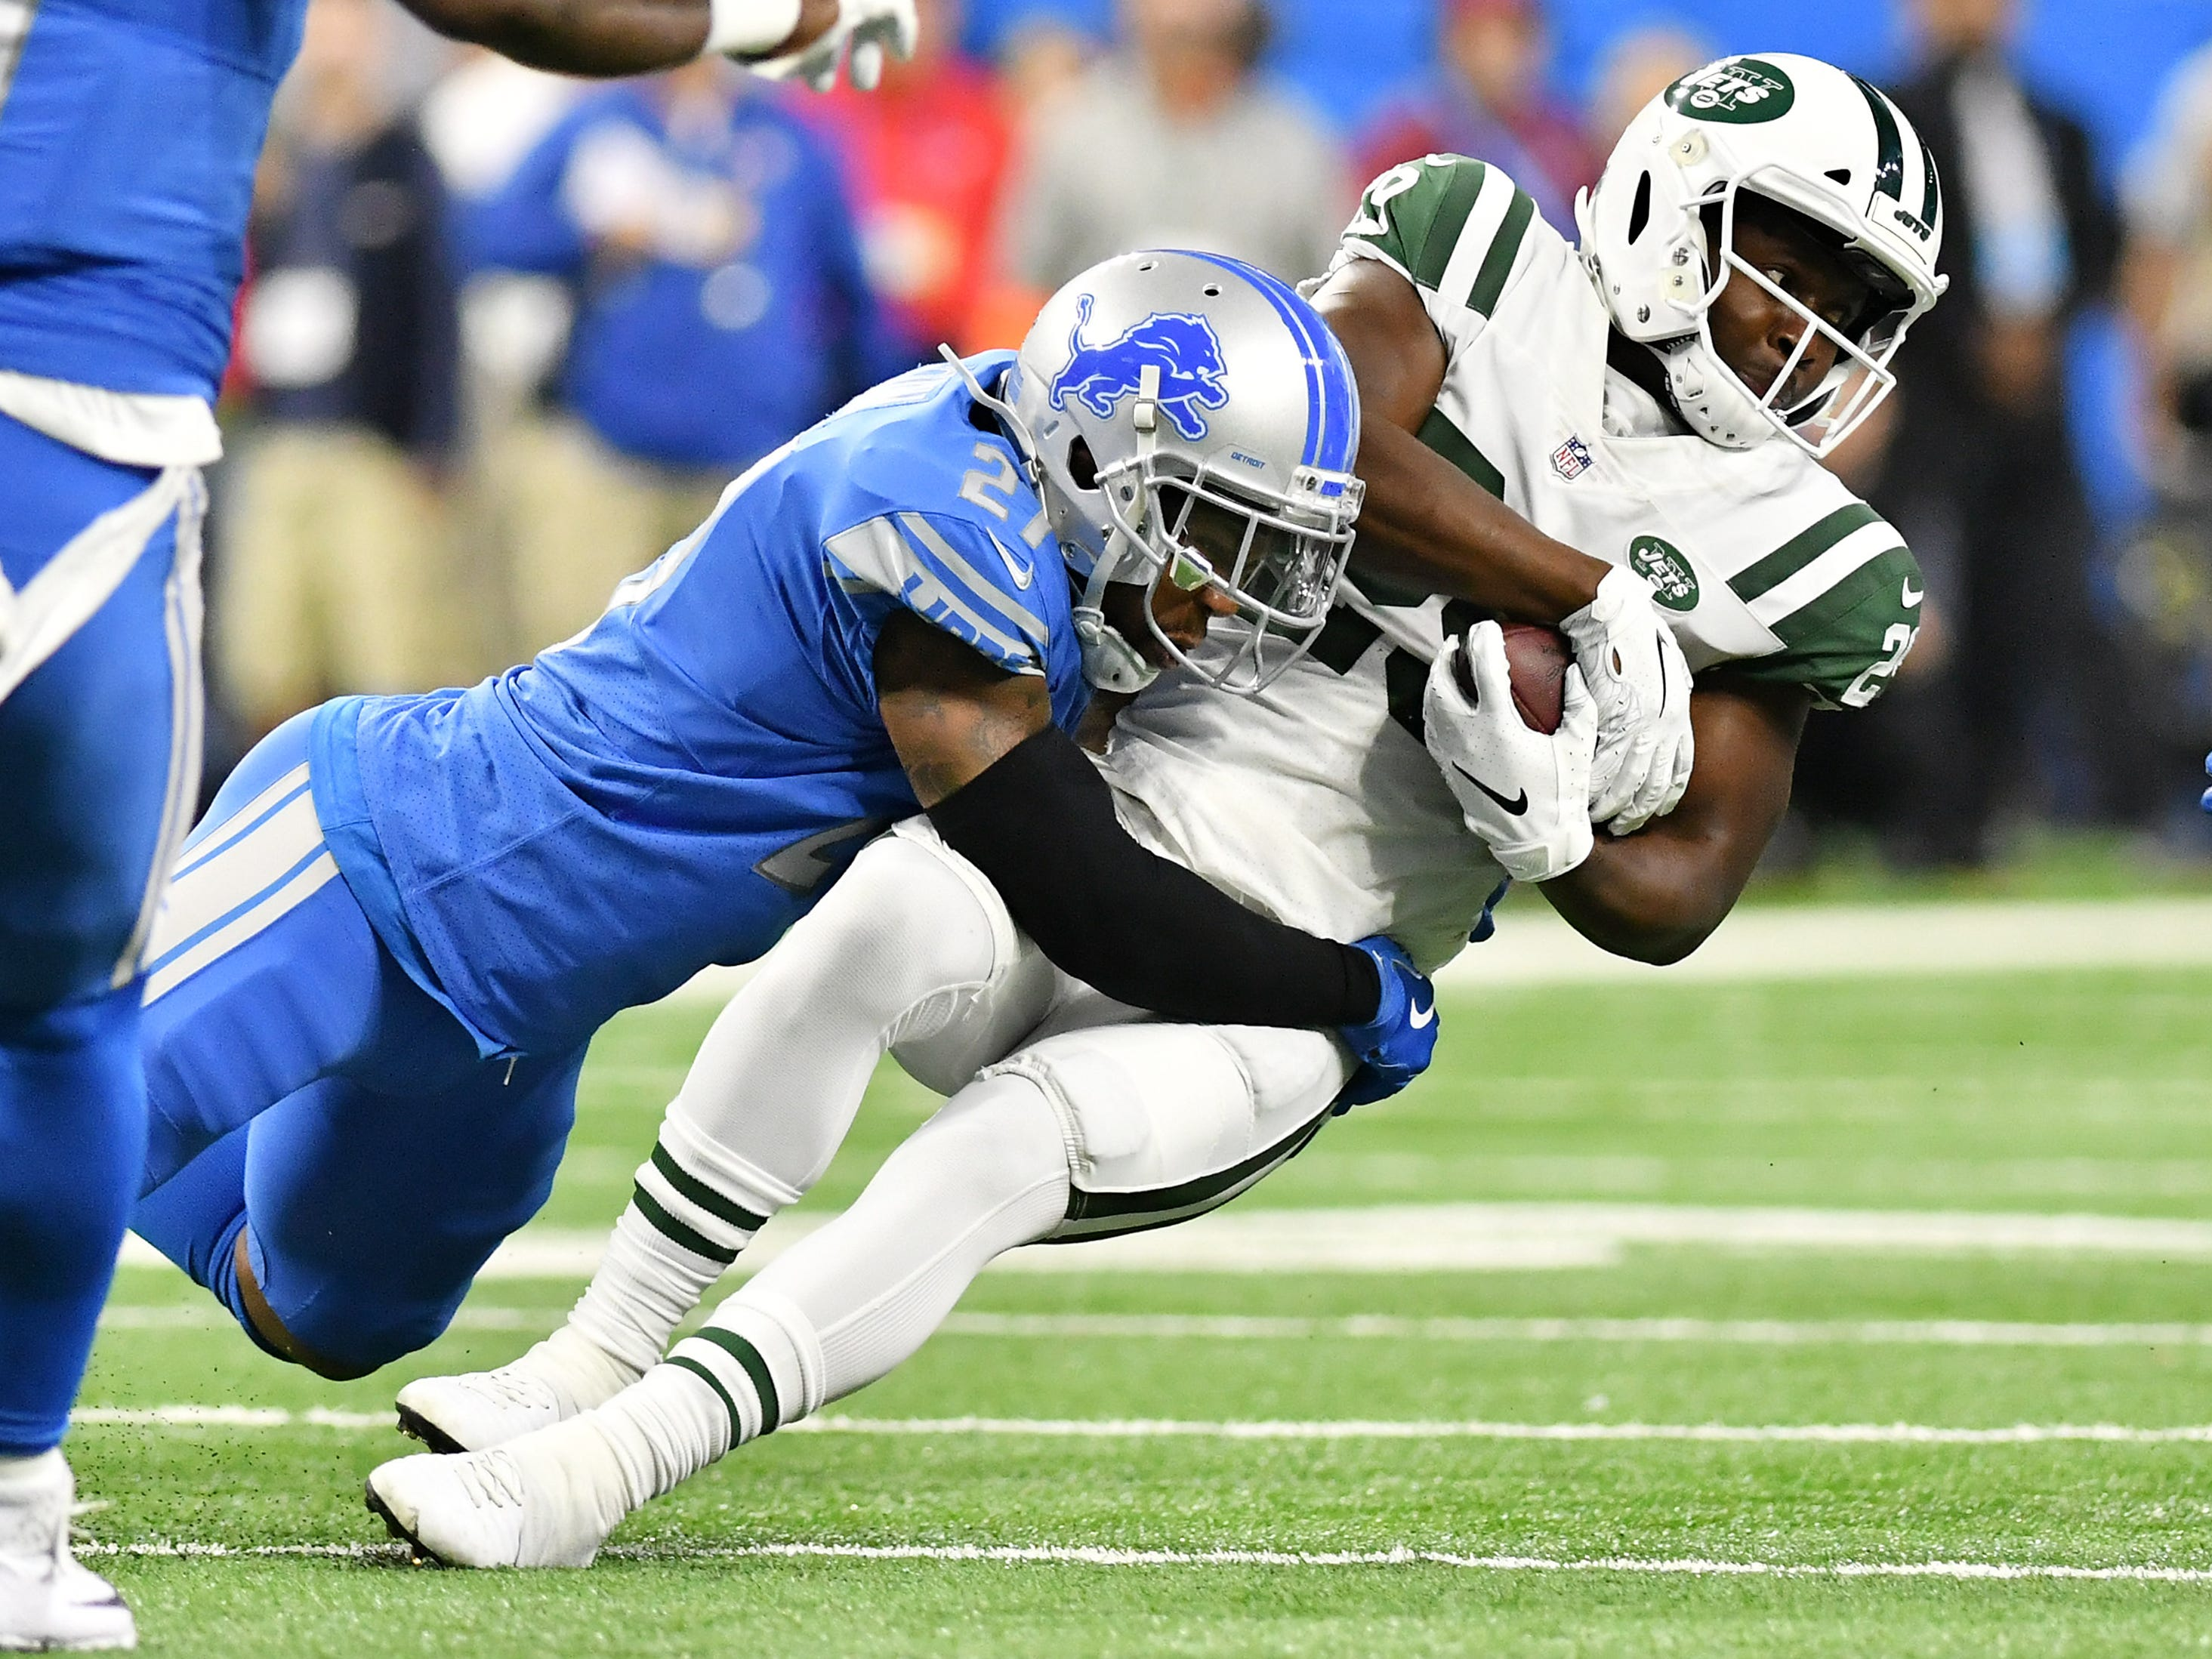 Lions safety Glover Quin tackles Jets running back Bilal Powell in the first quarter.